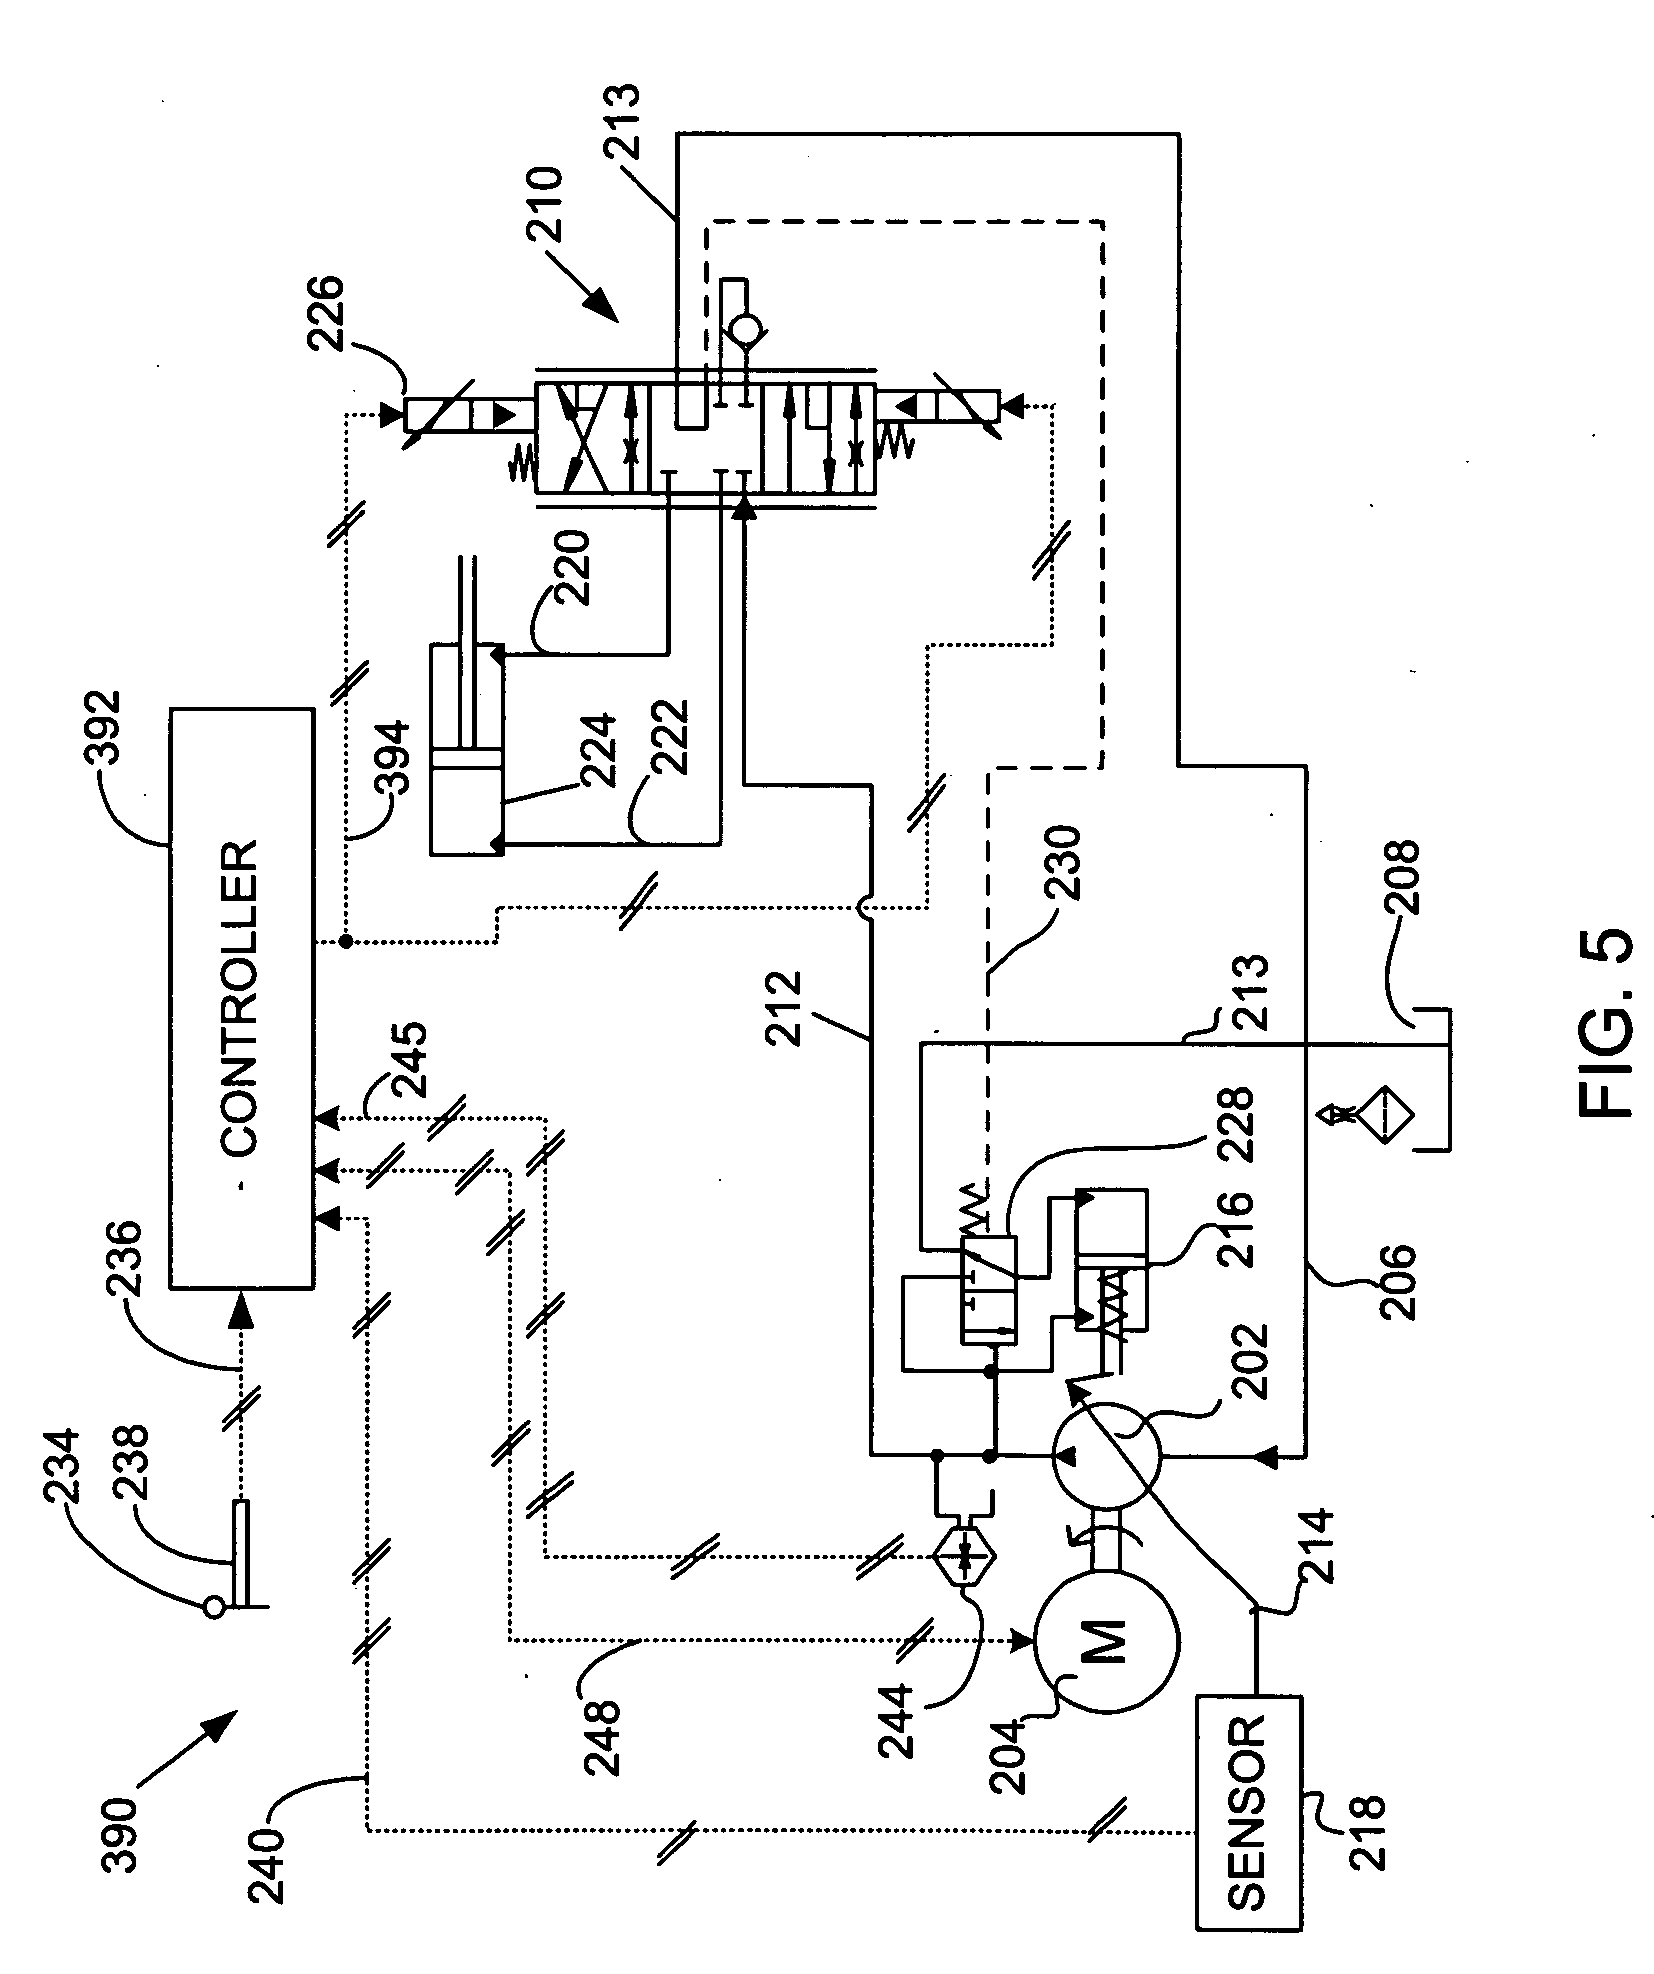 International 424 Wiring Diagram Fuse Box Scout Electrical Diagrams Rh Cytrus Co Truck 1956 Pickup